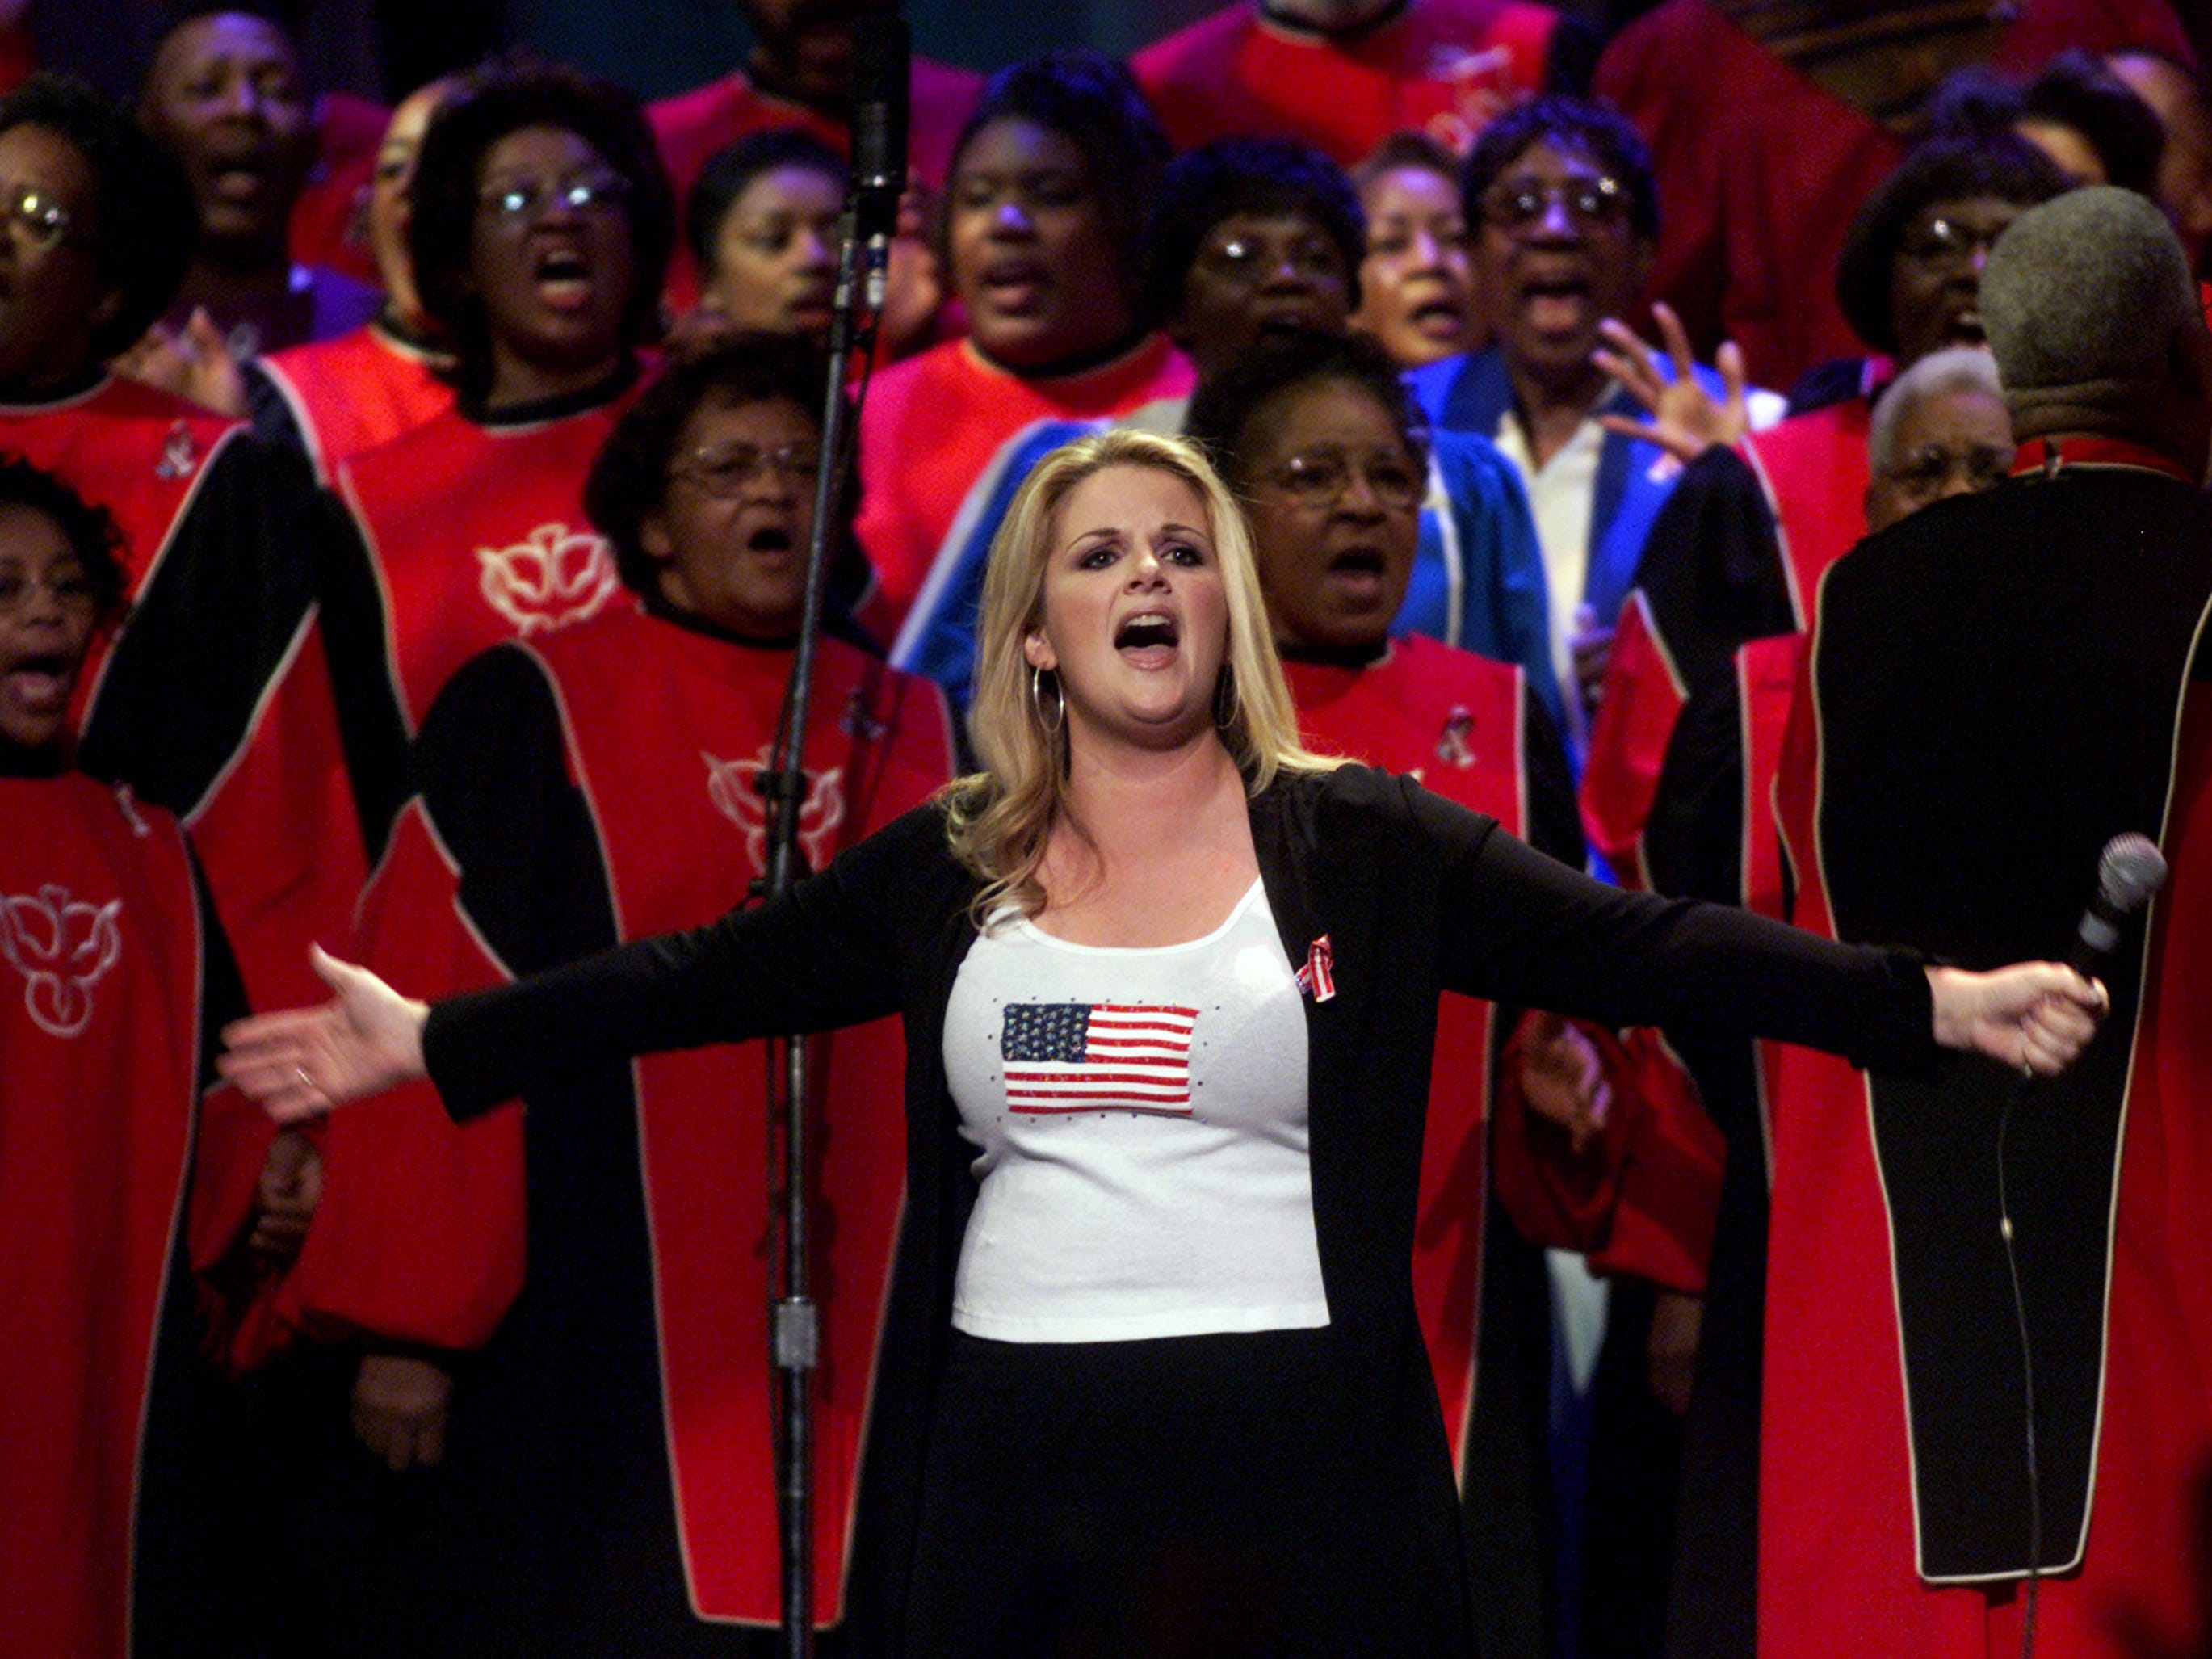 """Trisha Yearwood performs """"We Shall Be Free"""" with a choir at the Country Freedom Concert October 21, 2001 at Nashville's Gaylord Entertainment Center."""